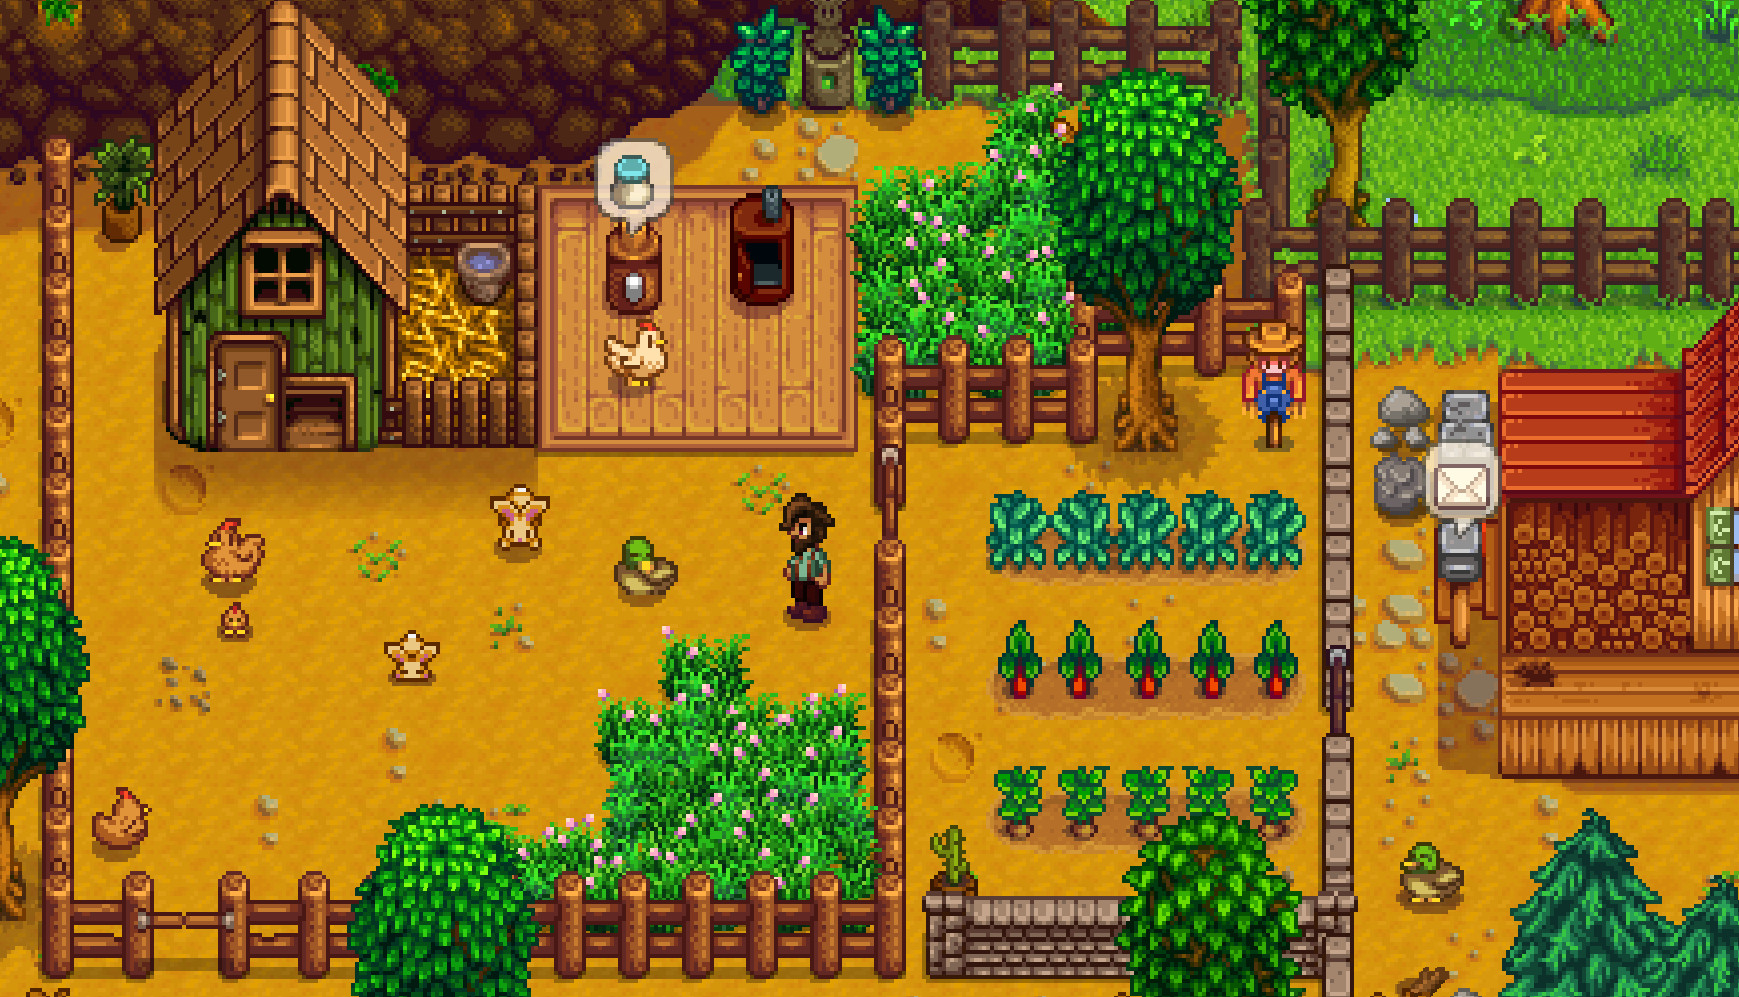 https://www.holarse-linuxgaming.de/sites/default/files/2016-10-04-1/StardewValley_9.jpg